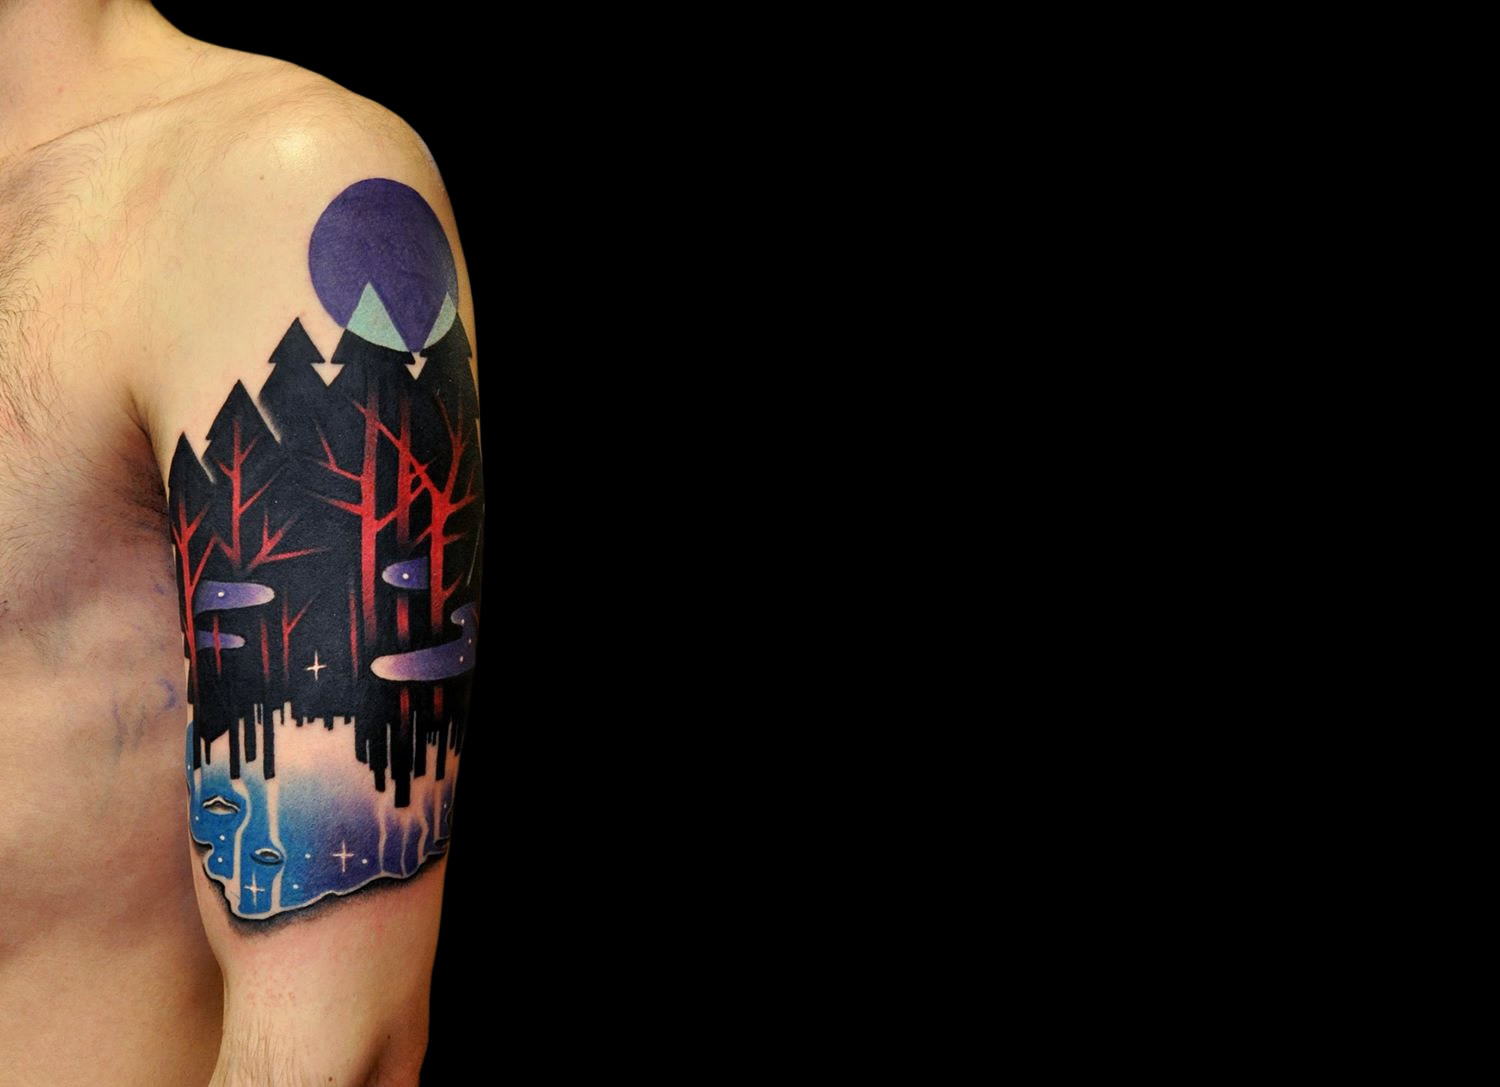 Apocalyptic clash tattoo, black trees and purple moon, tattoo by Marcin Aleksander Surowiec